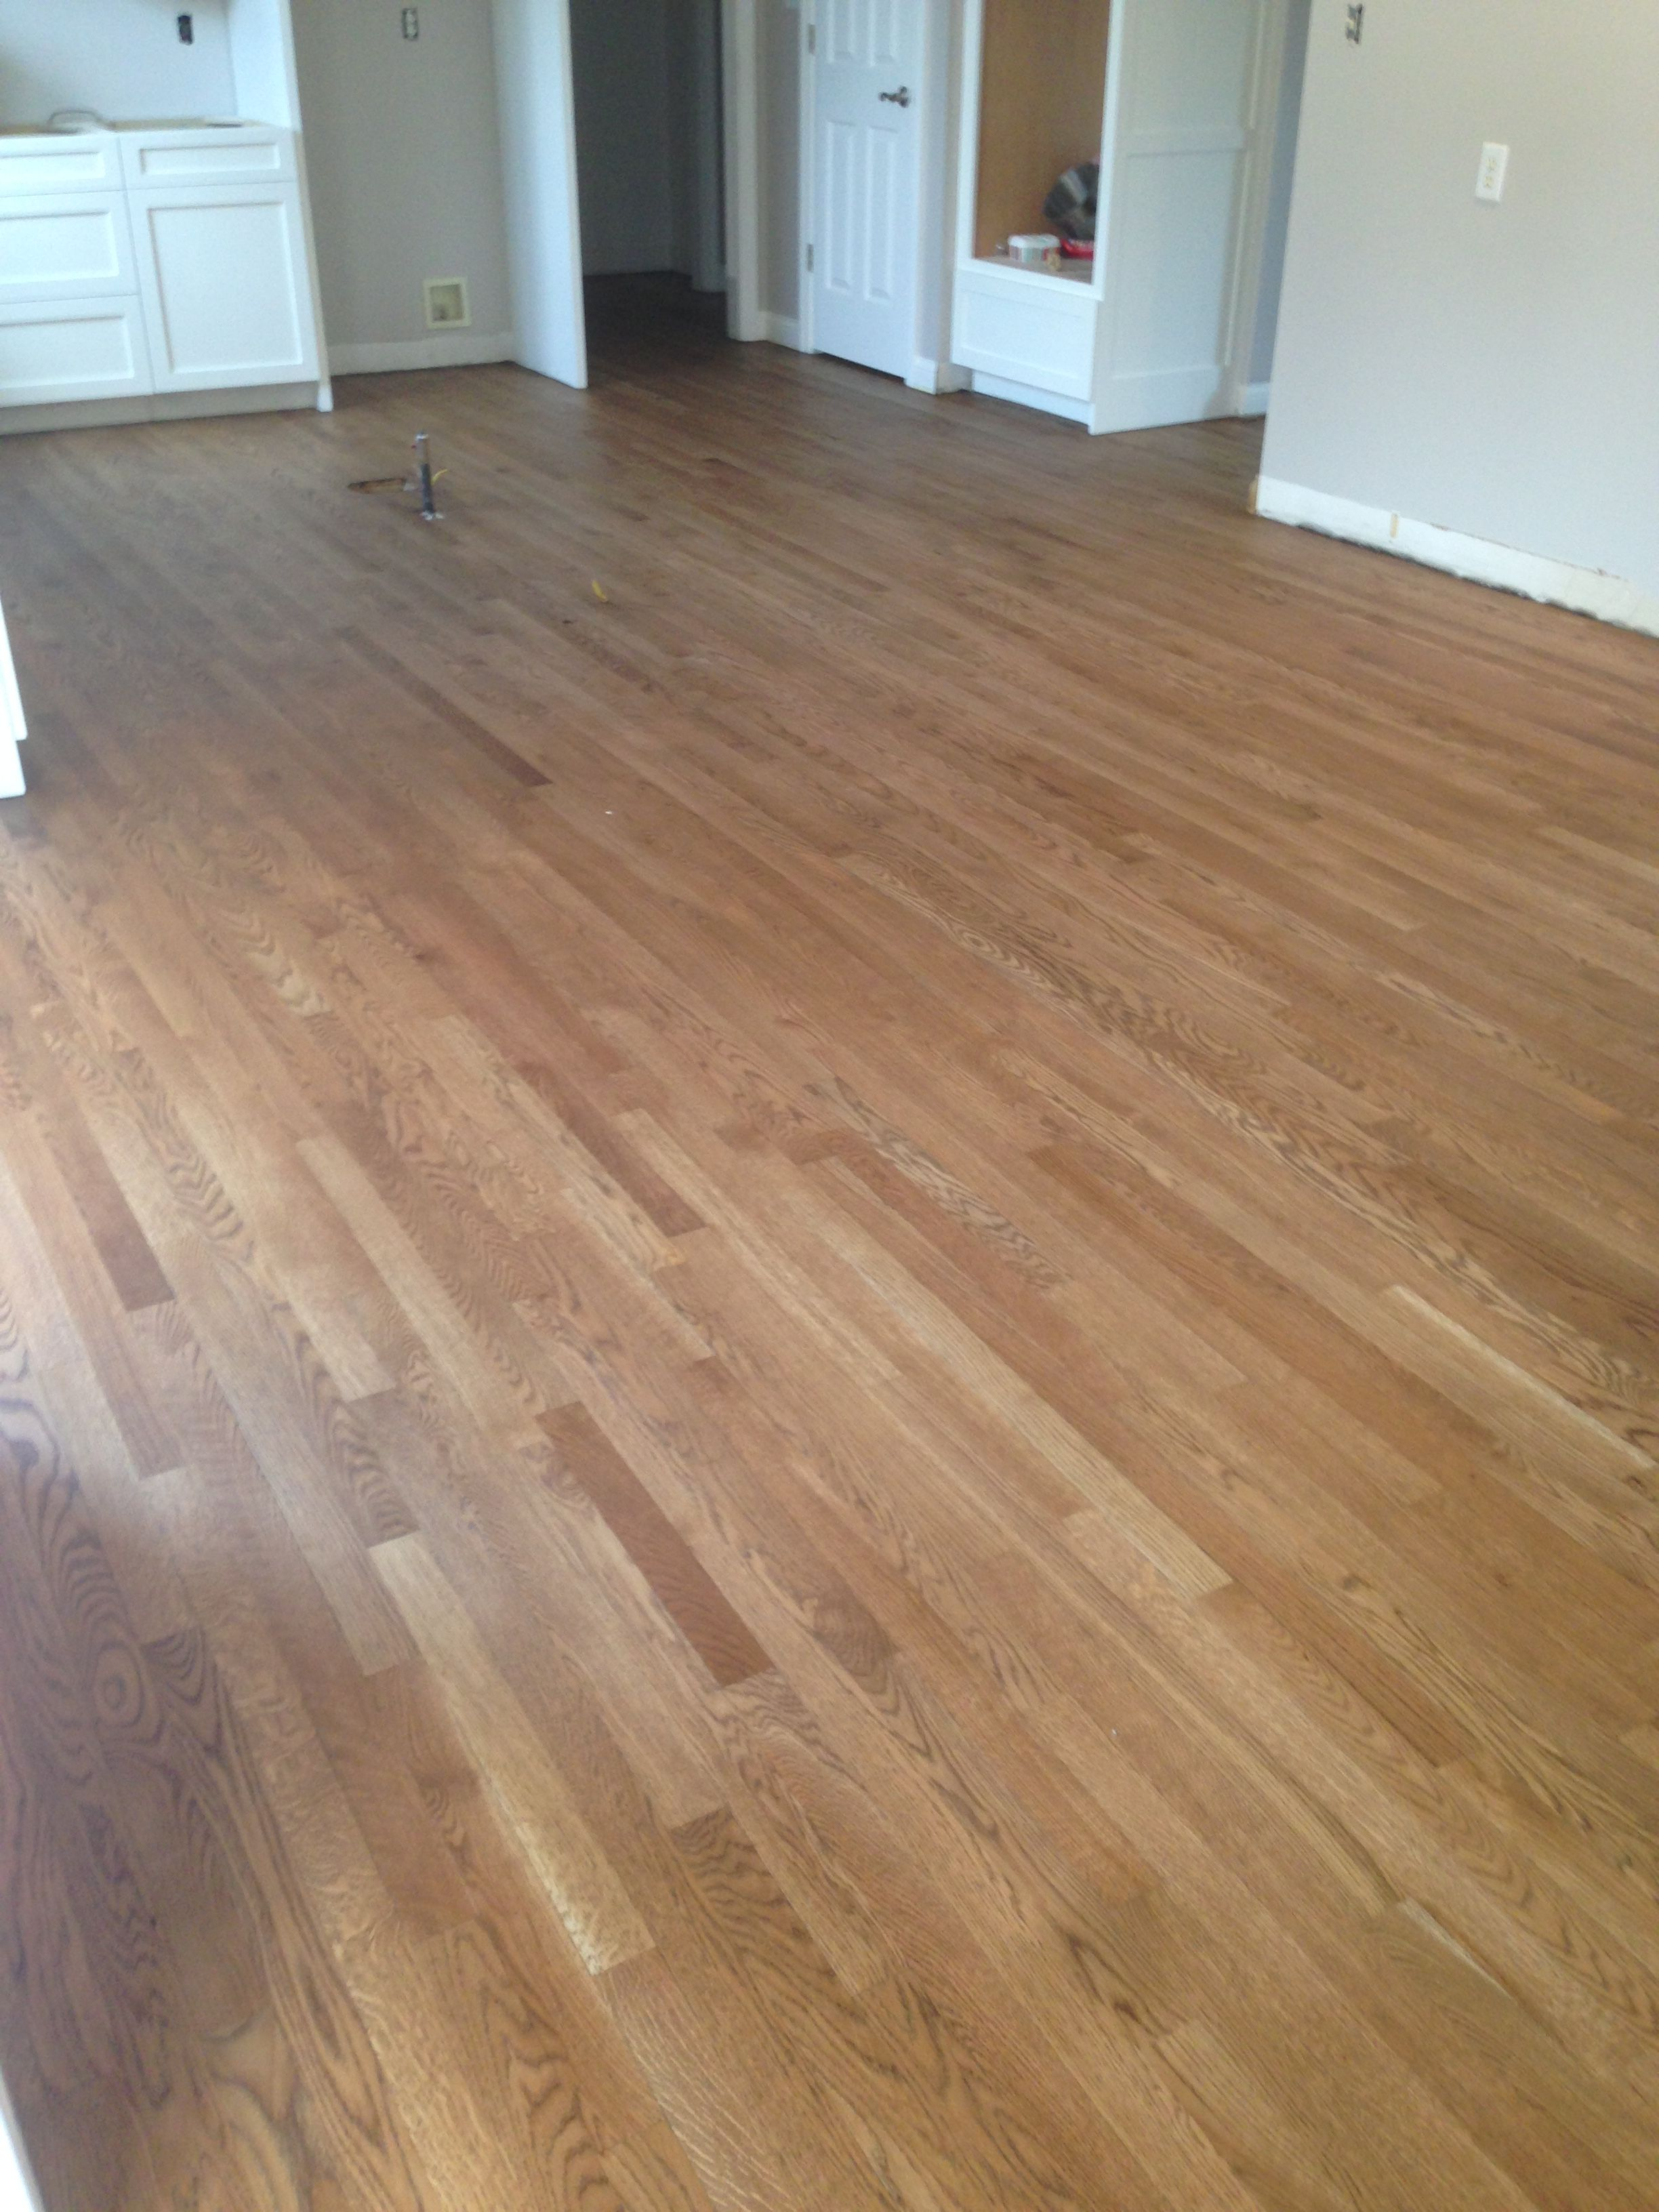 Finished Wood Flooring Wood floor finishes, Flooring